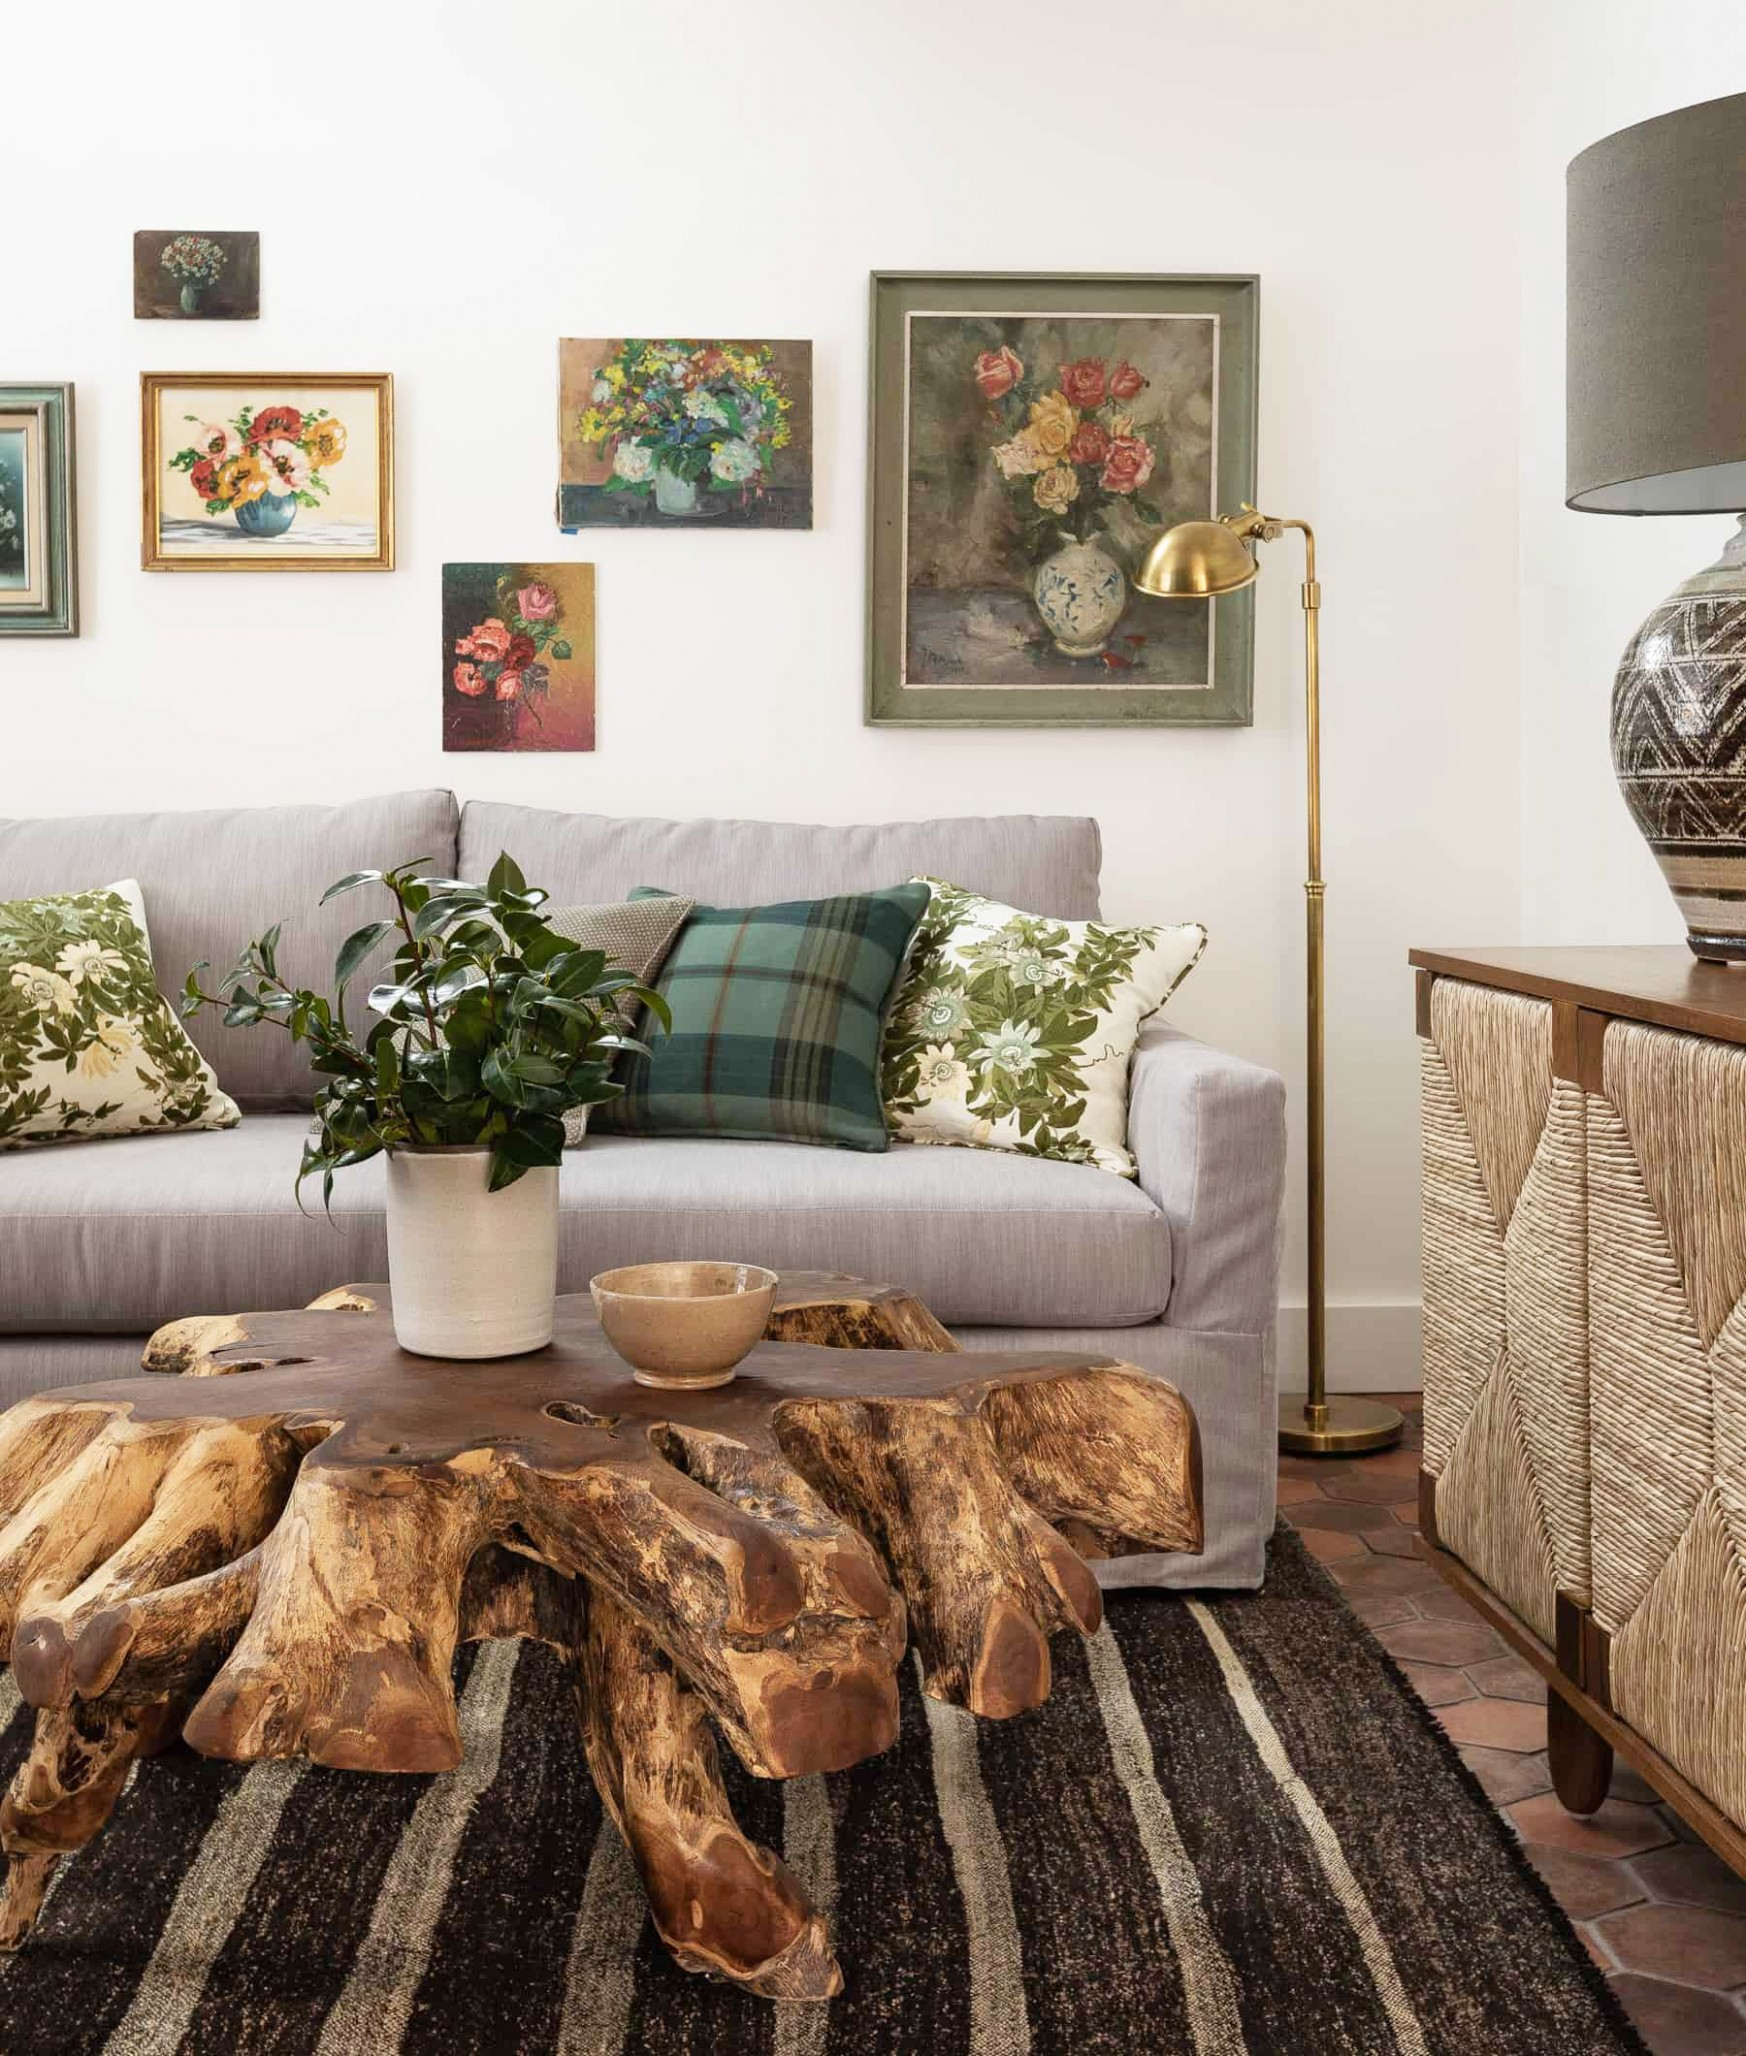 How to Decorate Your First Apartment - First Apartment Decorating  - Apartment Design Themes